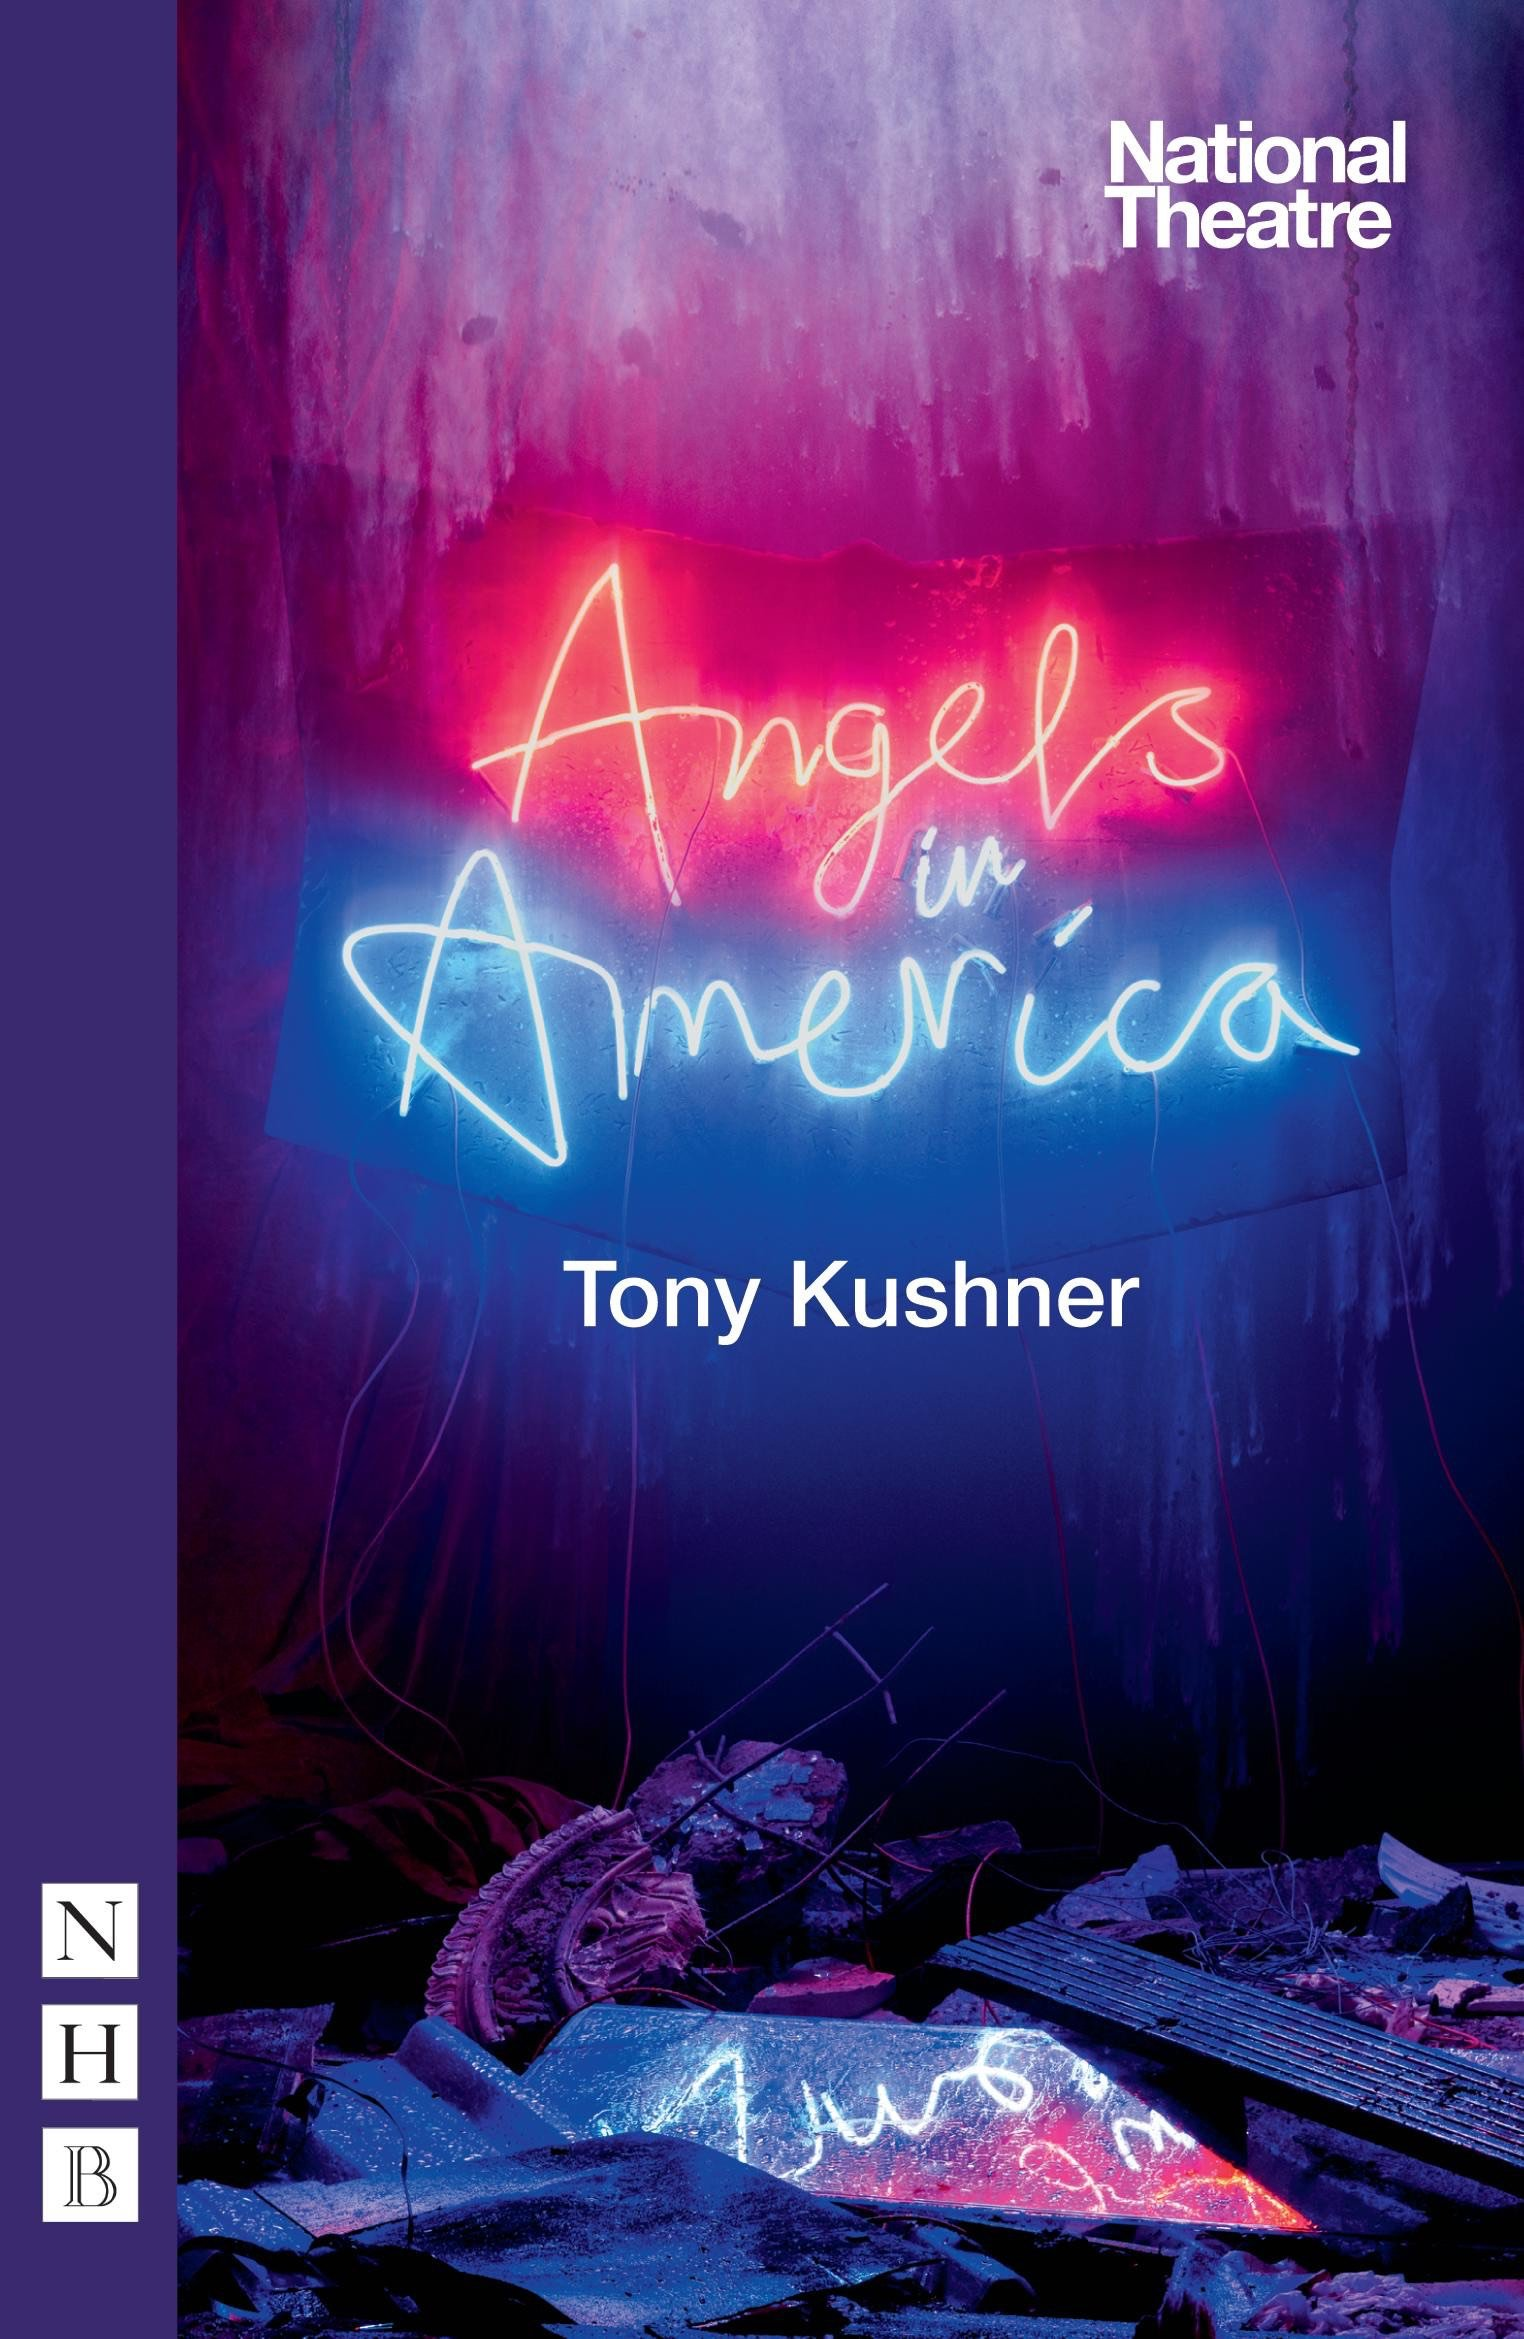 the struggle with identity in angels in america a play by tony kushner Angels in america, part two: perestroika tony kushner, angels in america: as was the case with the first angels in america book, the play itself manages to.